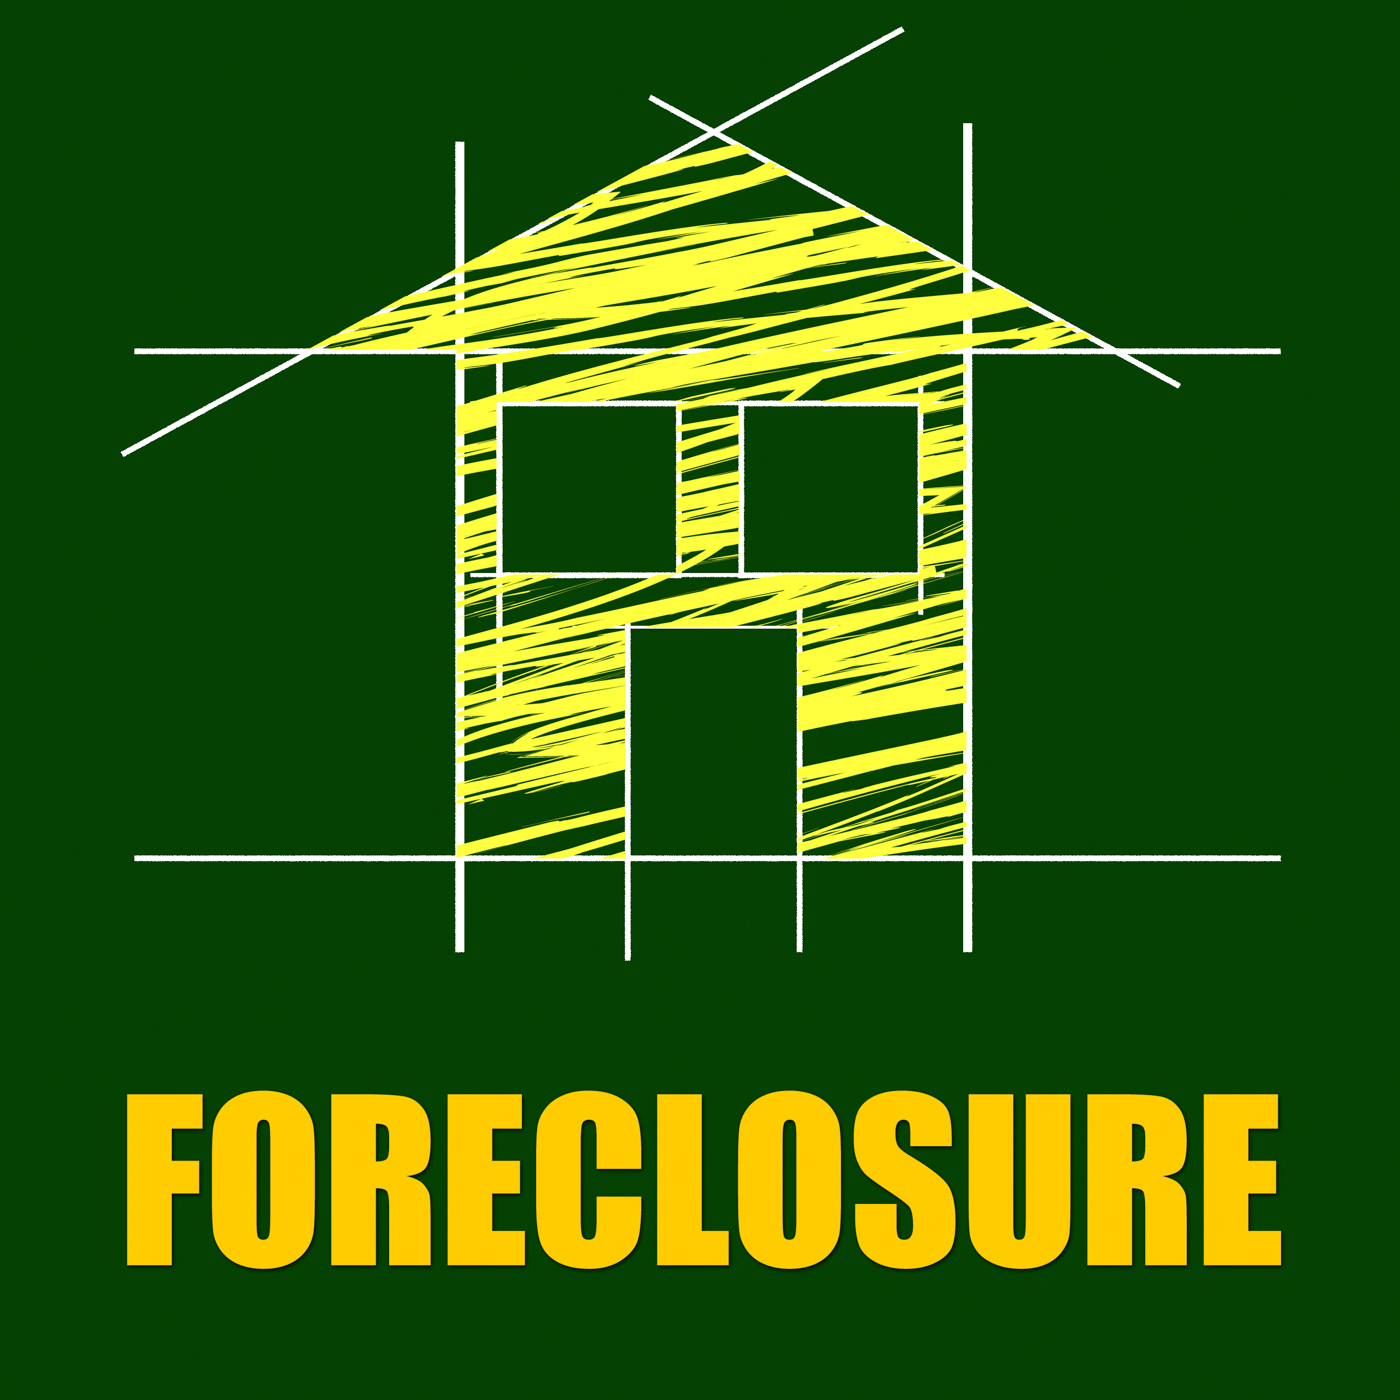 Foreclosure house indicates repayments stopped and apartment photo